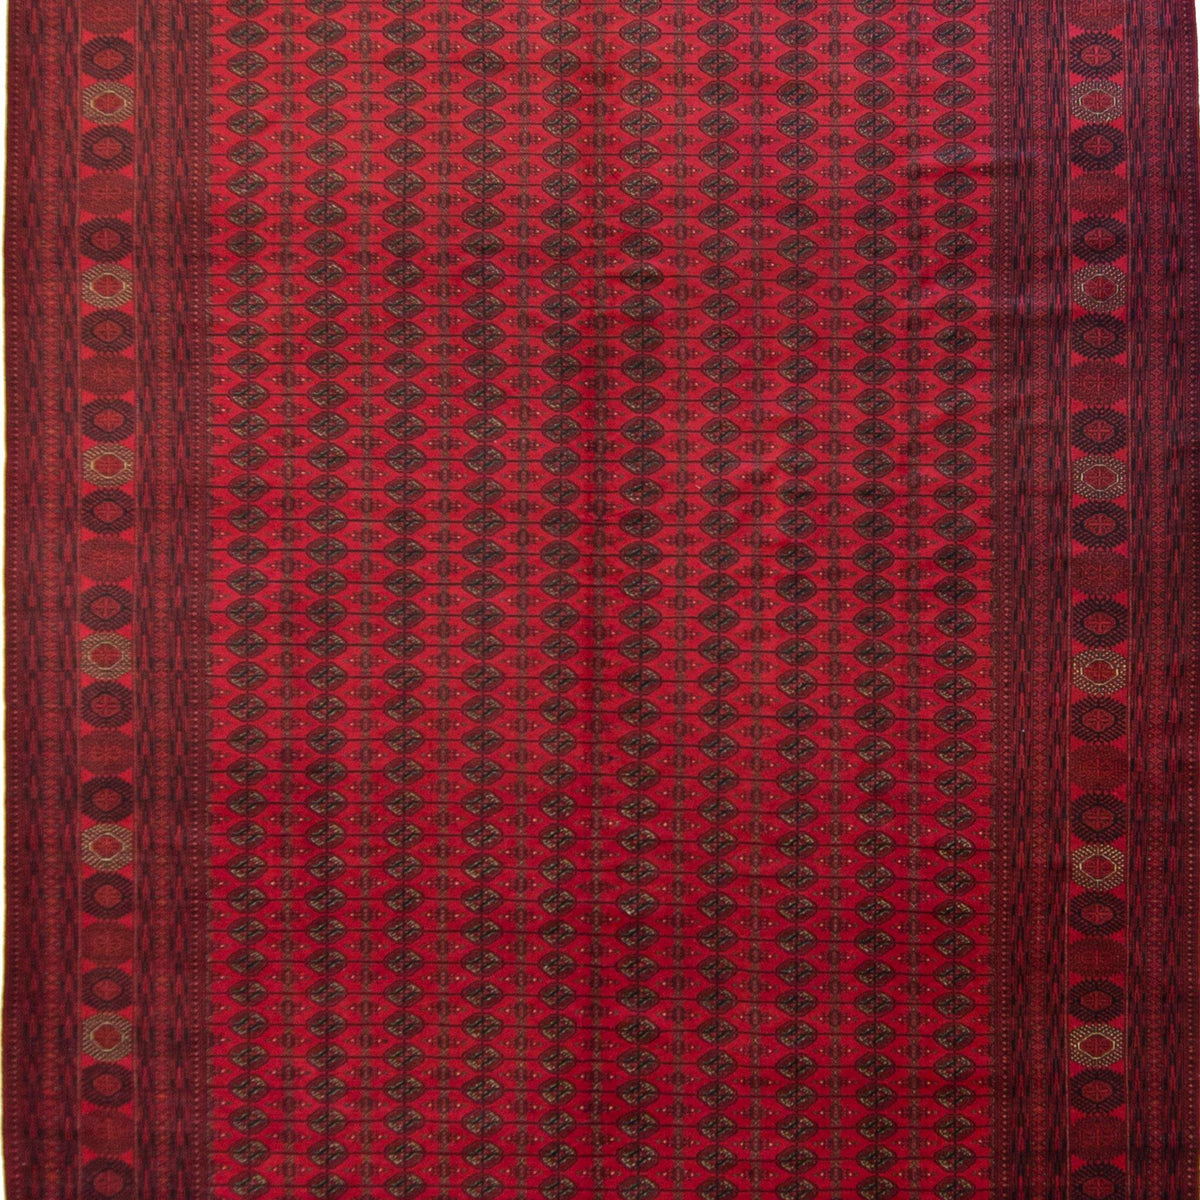 Fine Hand-knotted Wool Afghan Turkmen Rug 294cm x 385cm Persian-Rug | House-of-Haghi | NewMarket | Auckland | NZ | Handmade Persian Rugs | Hand Knotted Persian Rugs